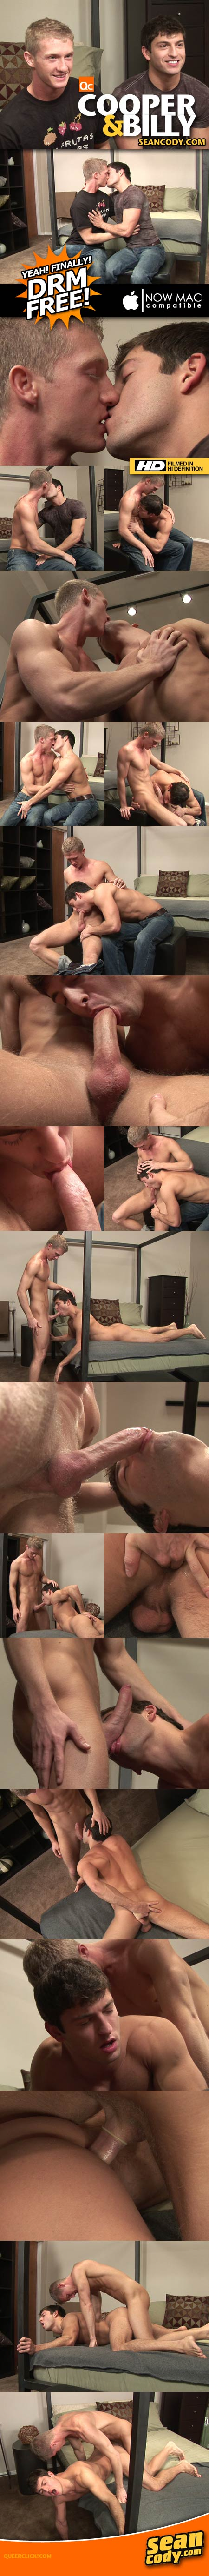 Cooper and Billy at SeanCody.com